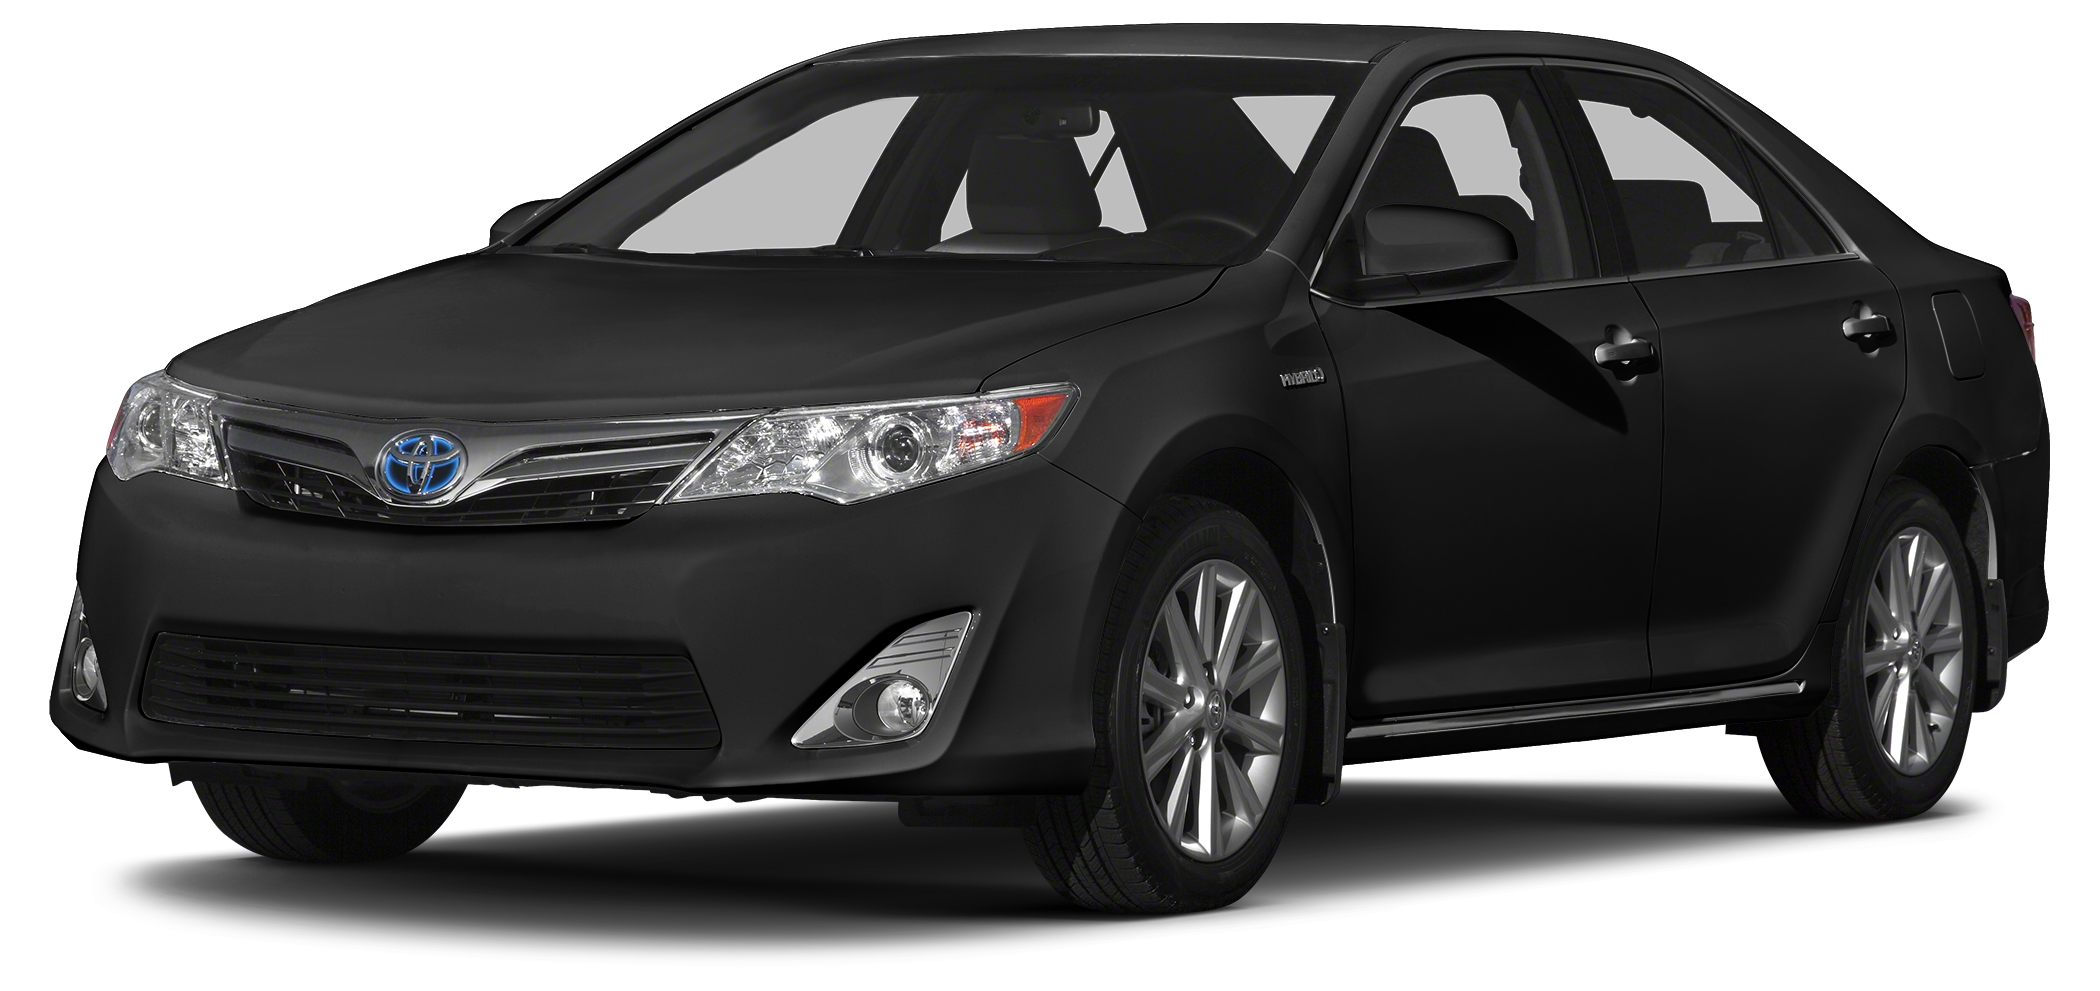 2014 Toyota Camry Hybrid LE LOW MILES - 20199 EPA 39 MPG Hwy43 MPG City ATTITUDE BLACK exterio